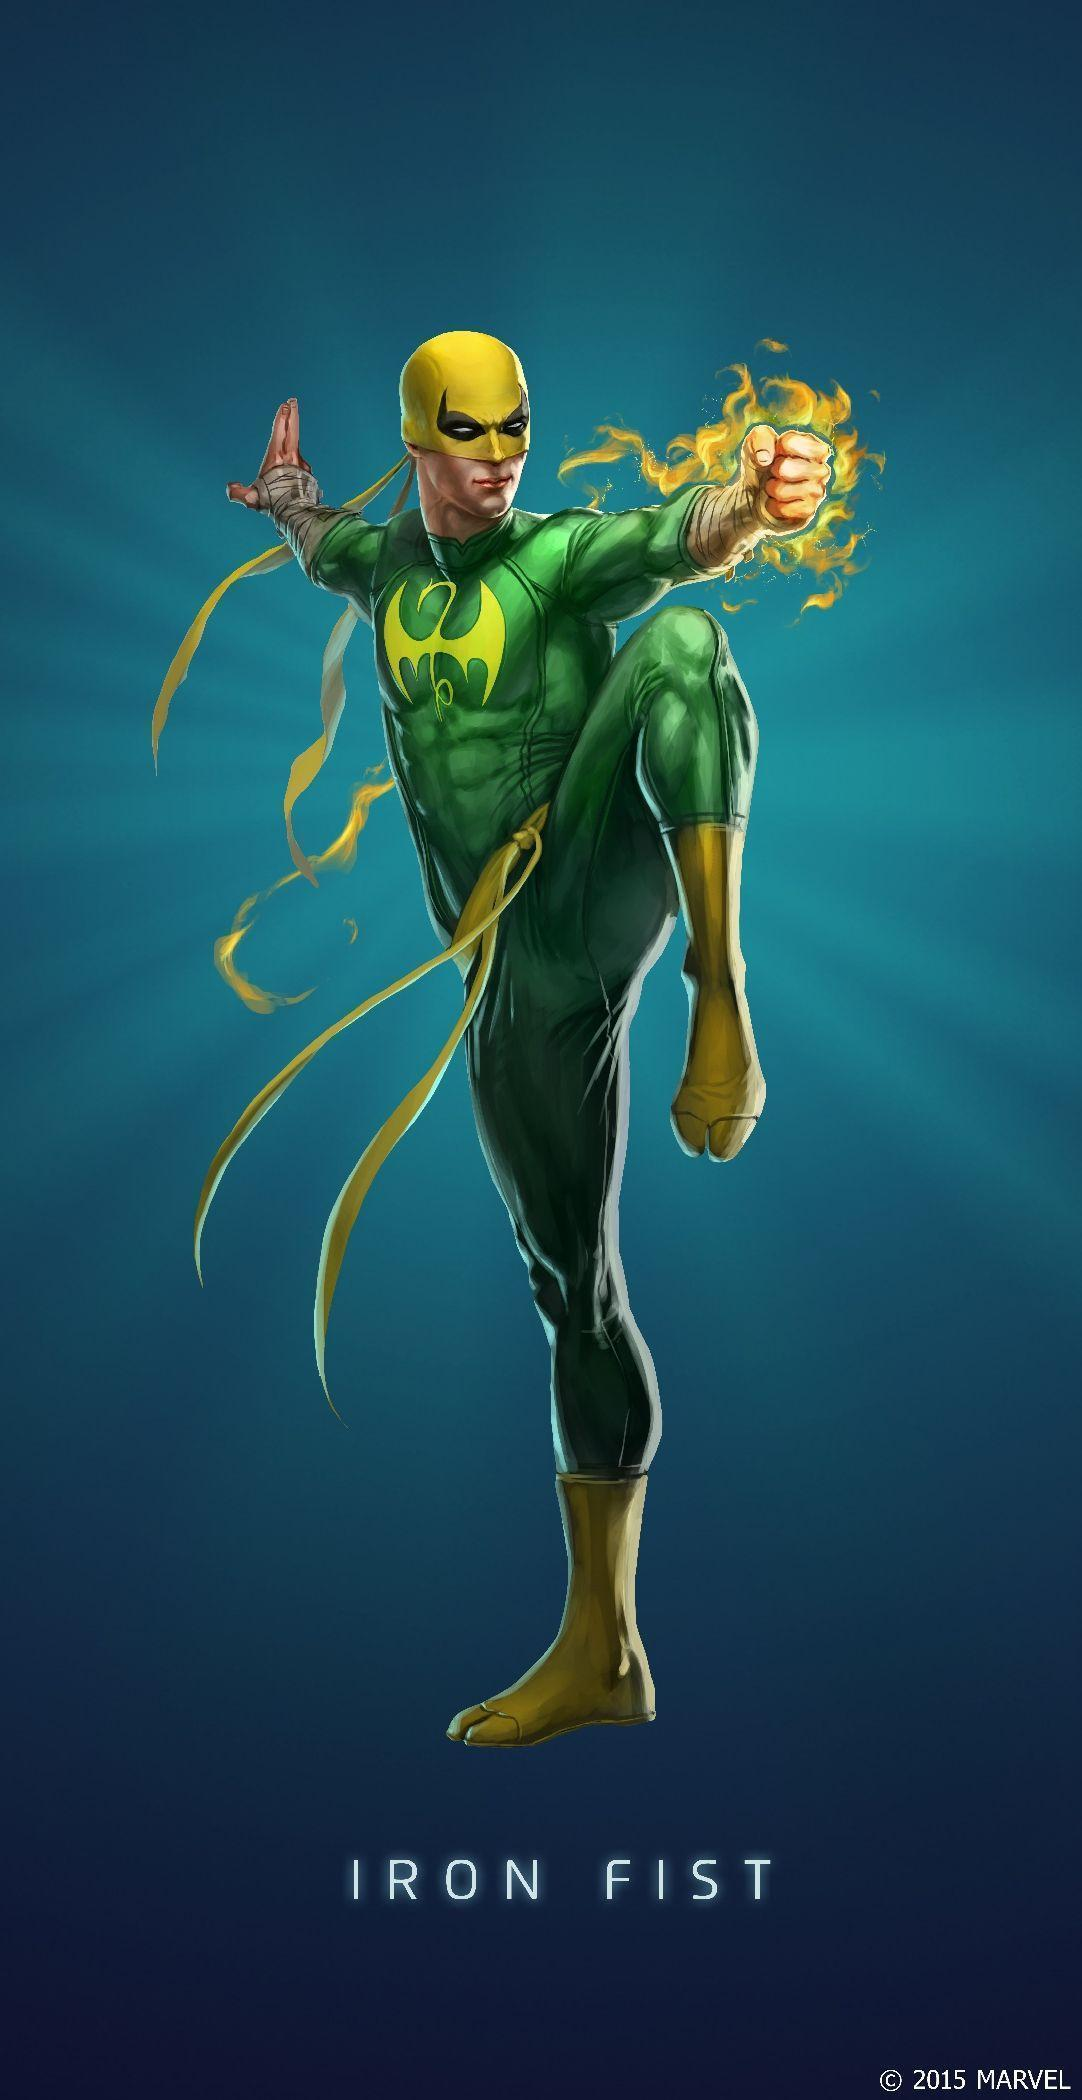 D3 Go! Forums • View topic - Iron Fist Wallpapers - Download Now!